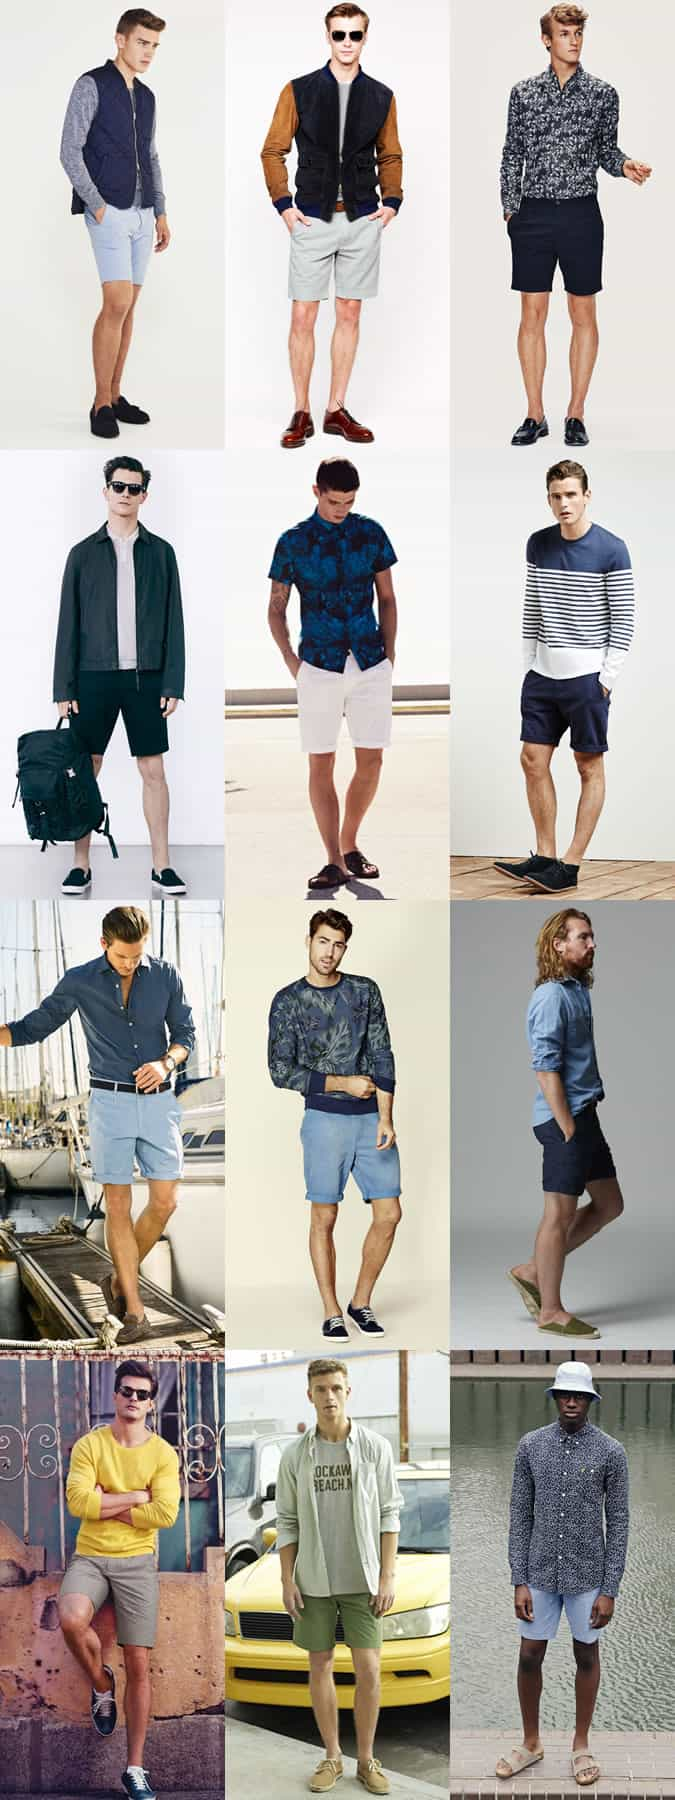 Men's Plain and neutral shorts outfit inspiration lookbook